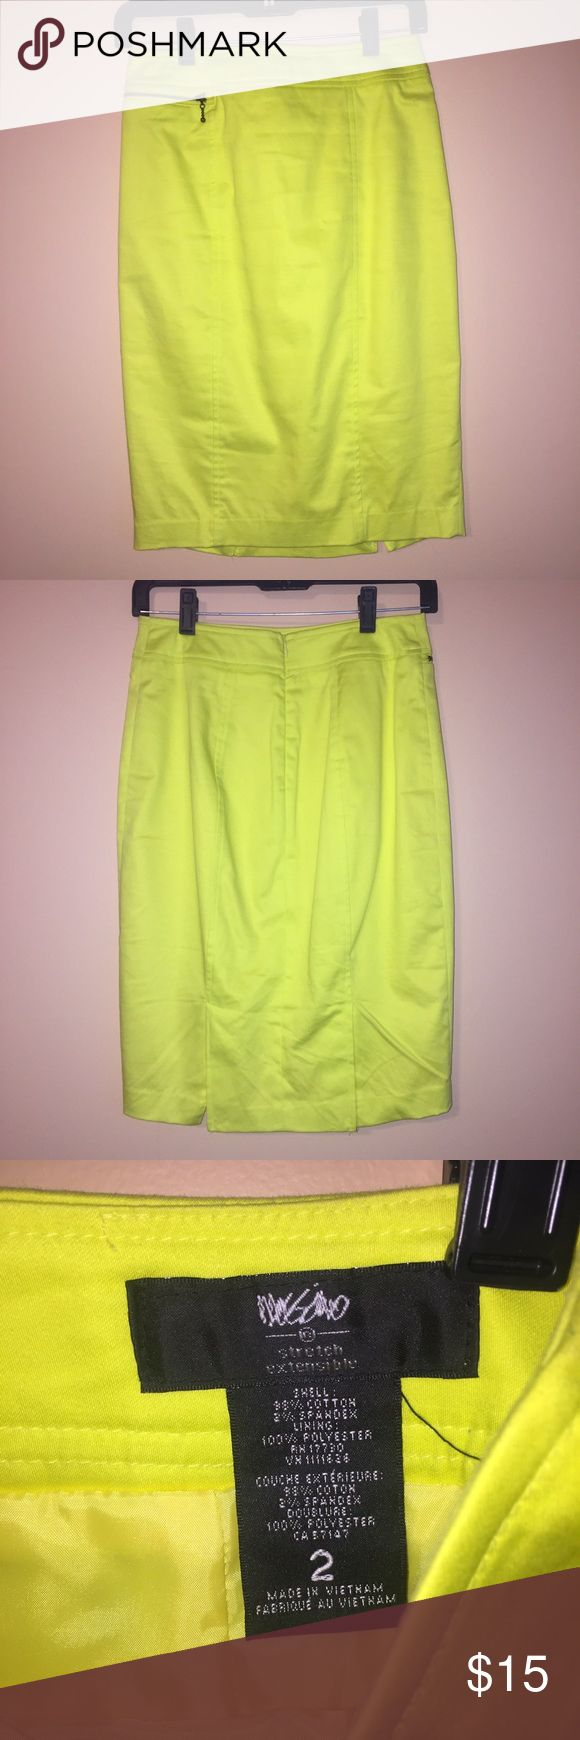 Mossimo Neon Yellow Skirt Cute bright neon yellow skirt. In good condition. **If making offers, please use the offer button.** Thanks! Mossimo Supply Co Skirts Pencil